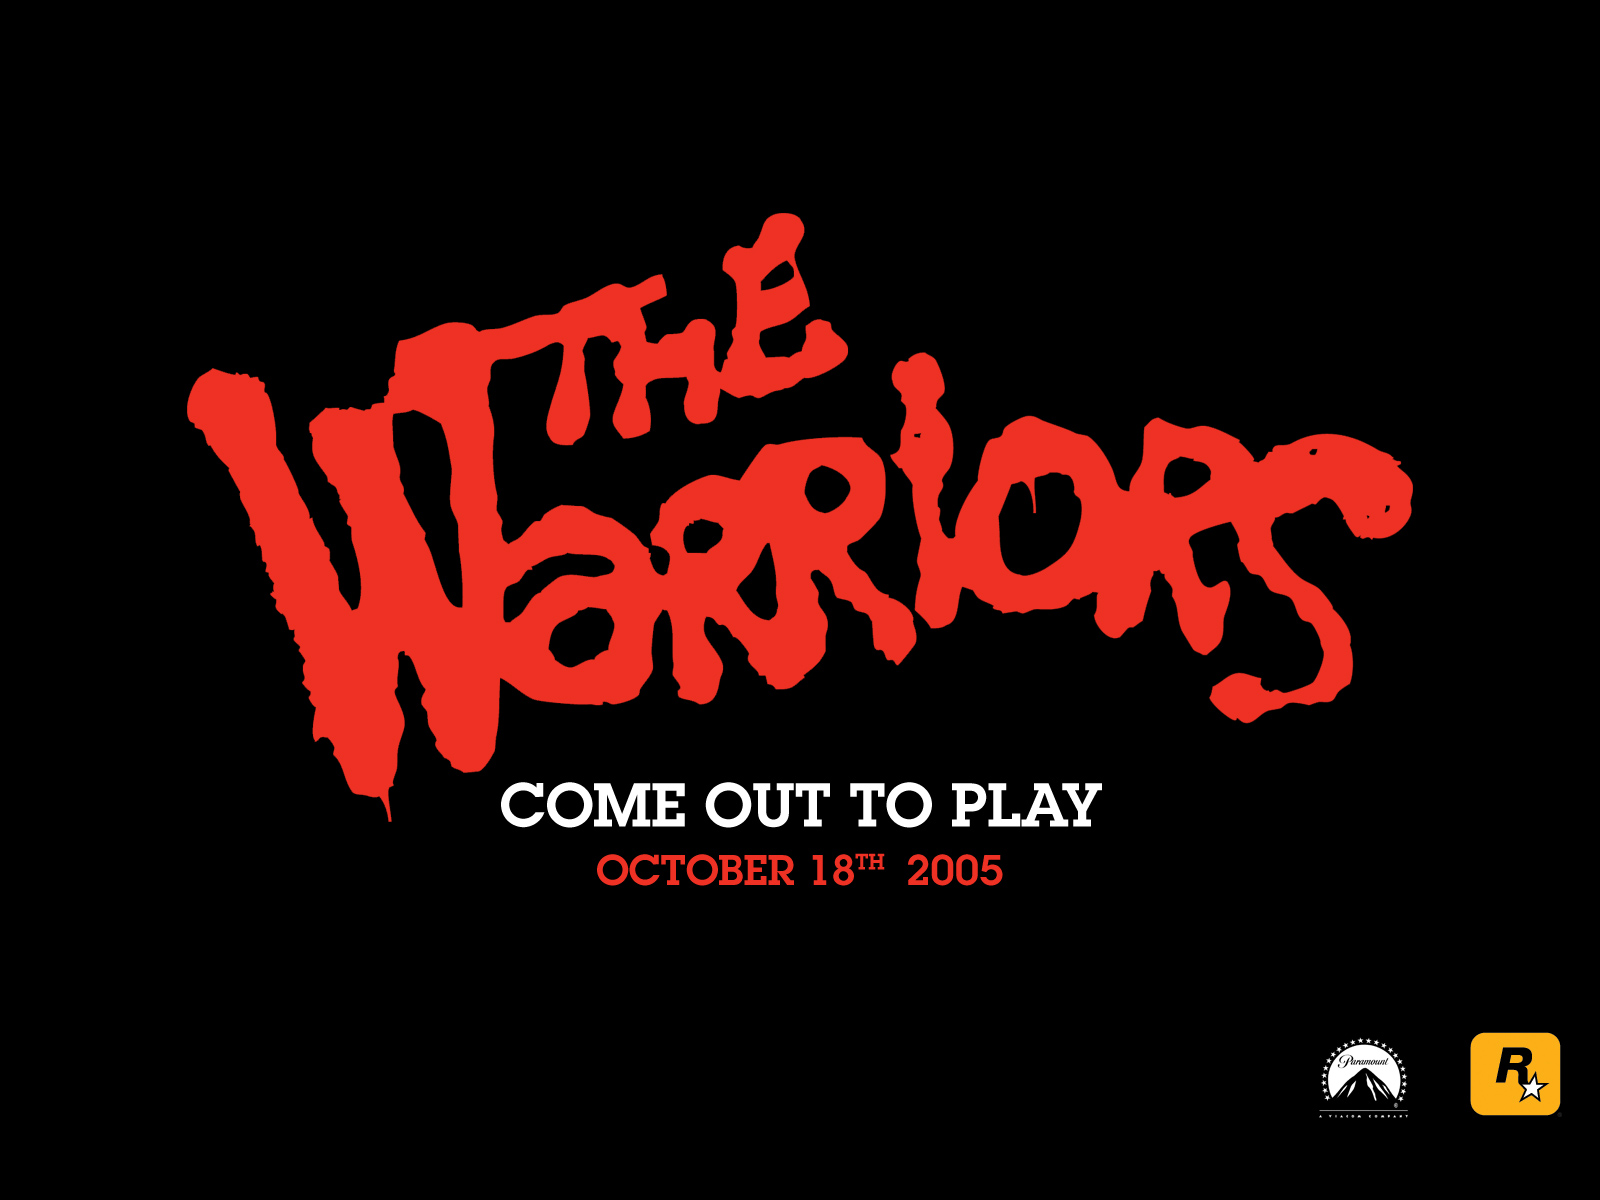 Image - Thewarriors logo 1600x1200.jpg | The Warriors ...